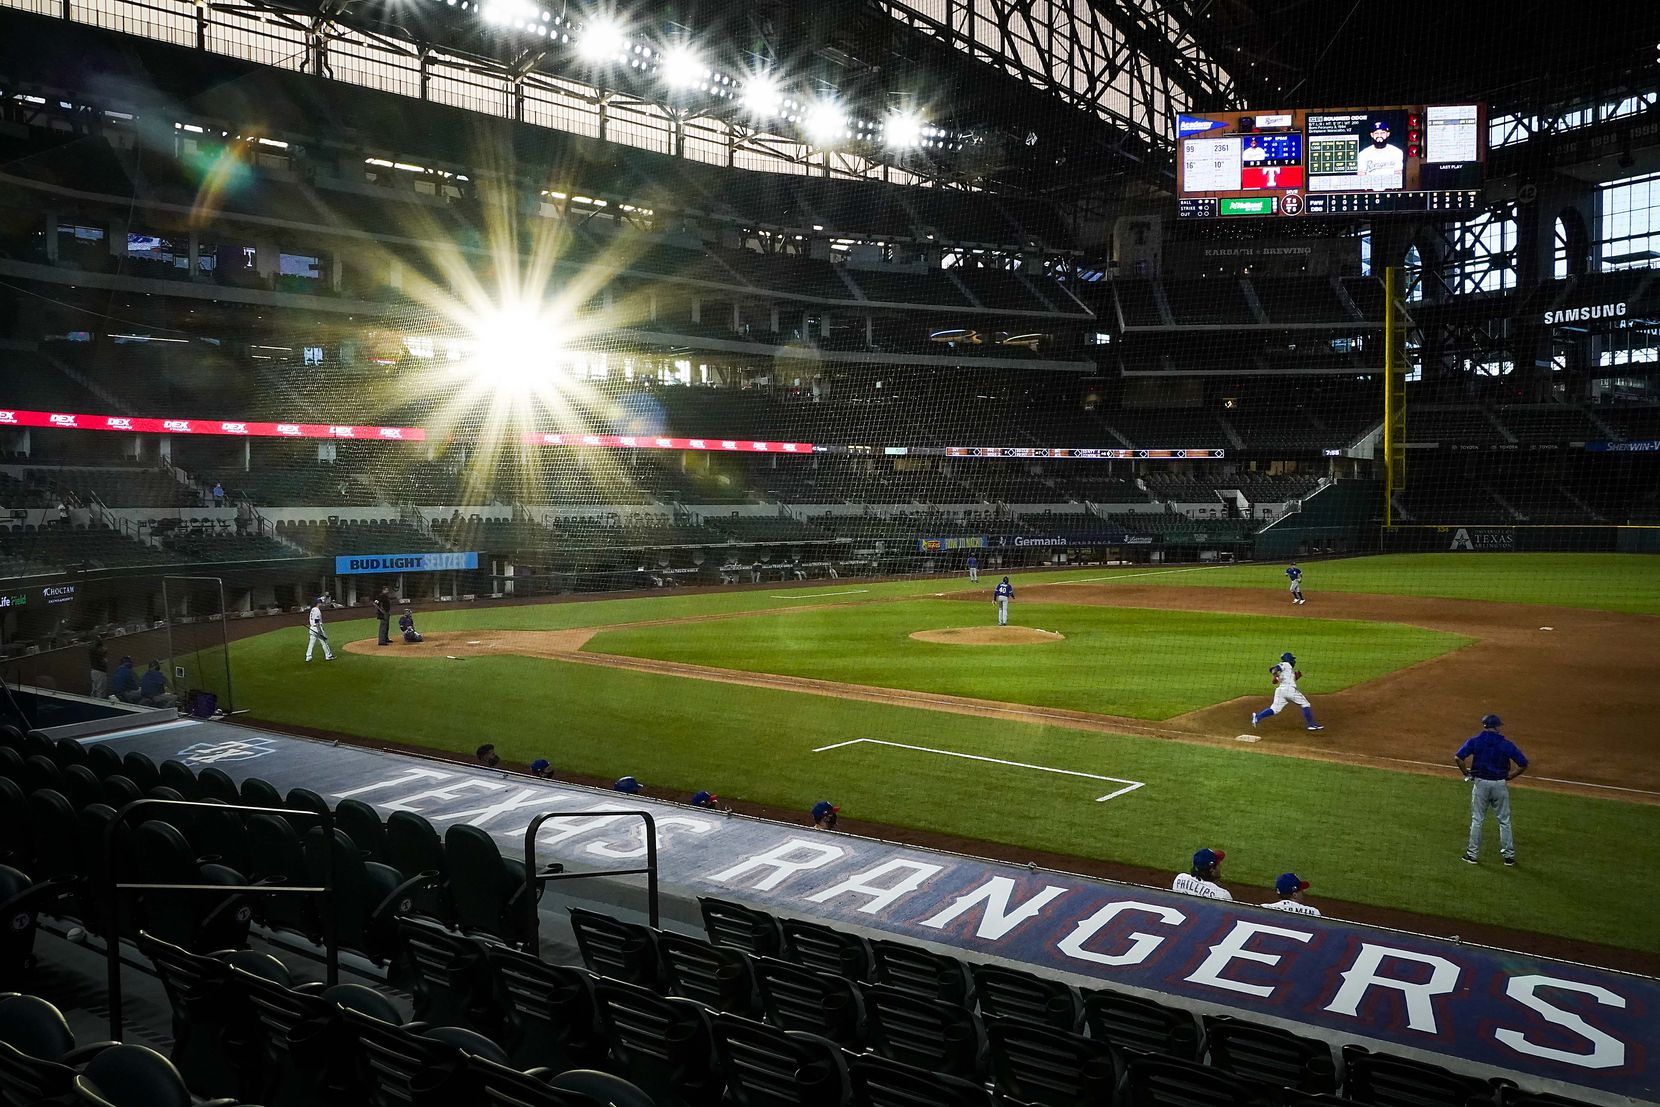 Rougned Odor rounds first base as sunlight streams in the stadium during a Texas Rangers Summer Camp intrasquad game at Globe Life Field on Saturday, July 18, 2020.